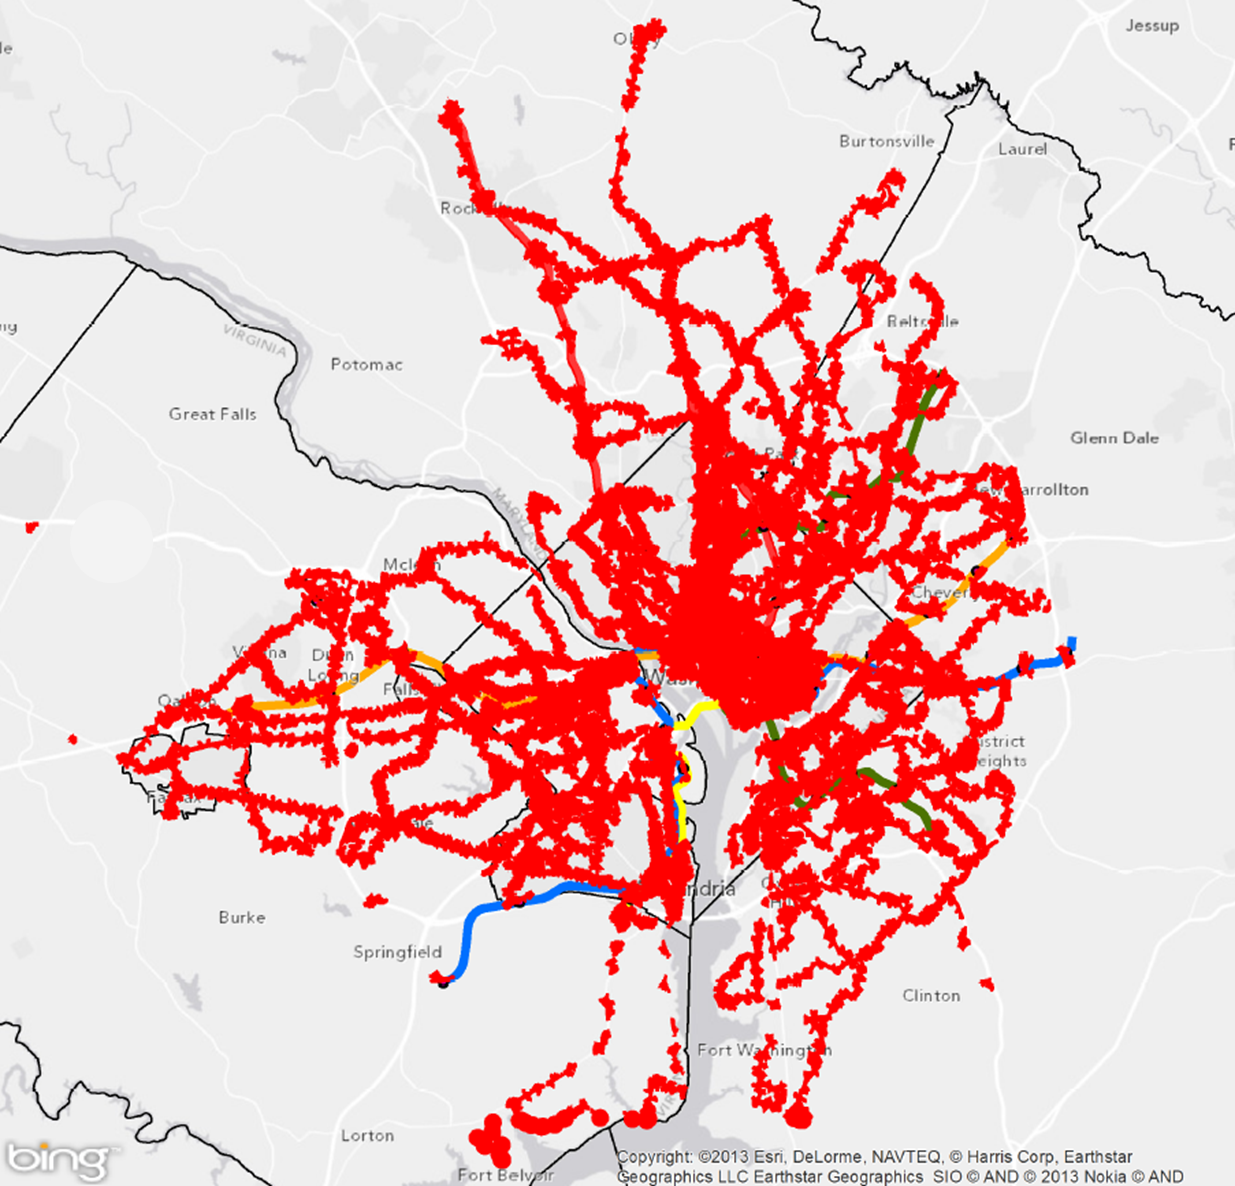 Quarter-mile walk (by the network) for regional Metrobus stops and Metrorail stations